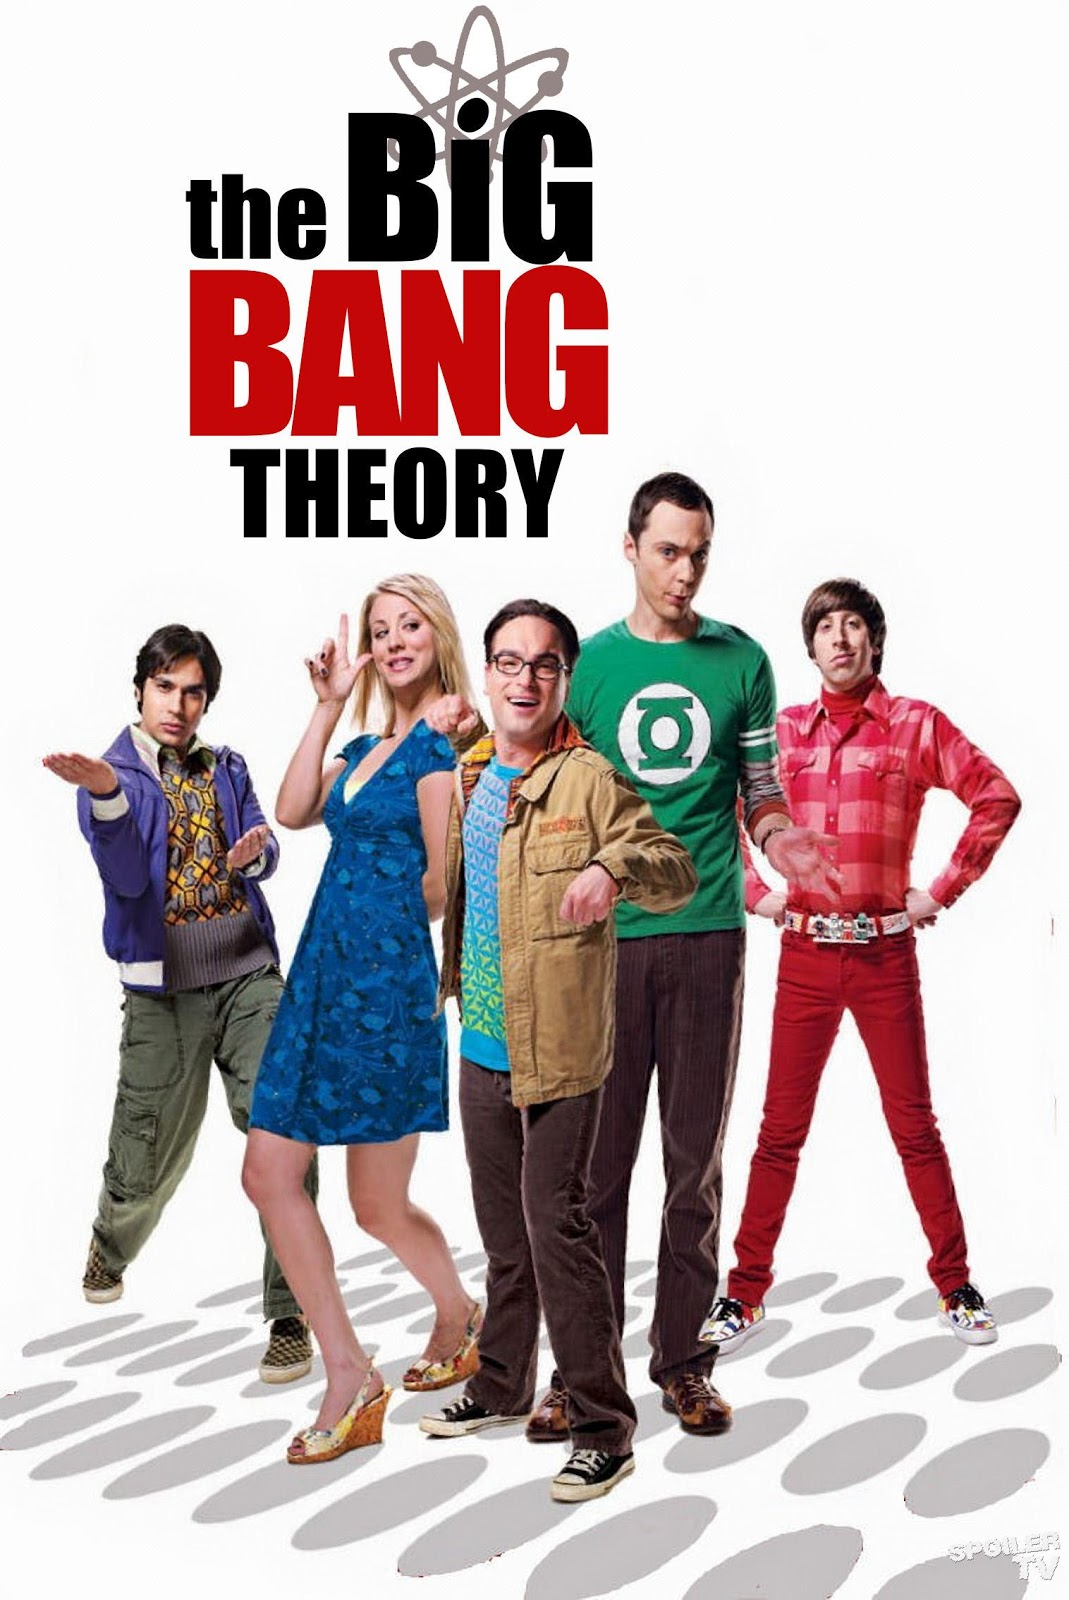 The Big Bang Theory Season 7 Episode 21: The Anything Can Happen Recurrence